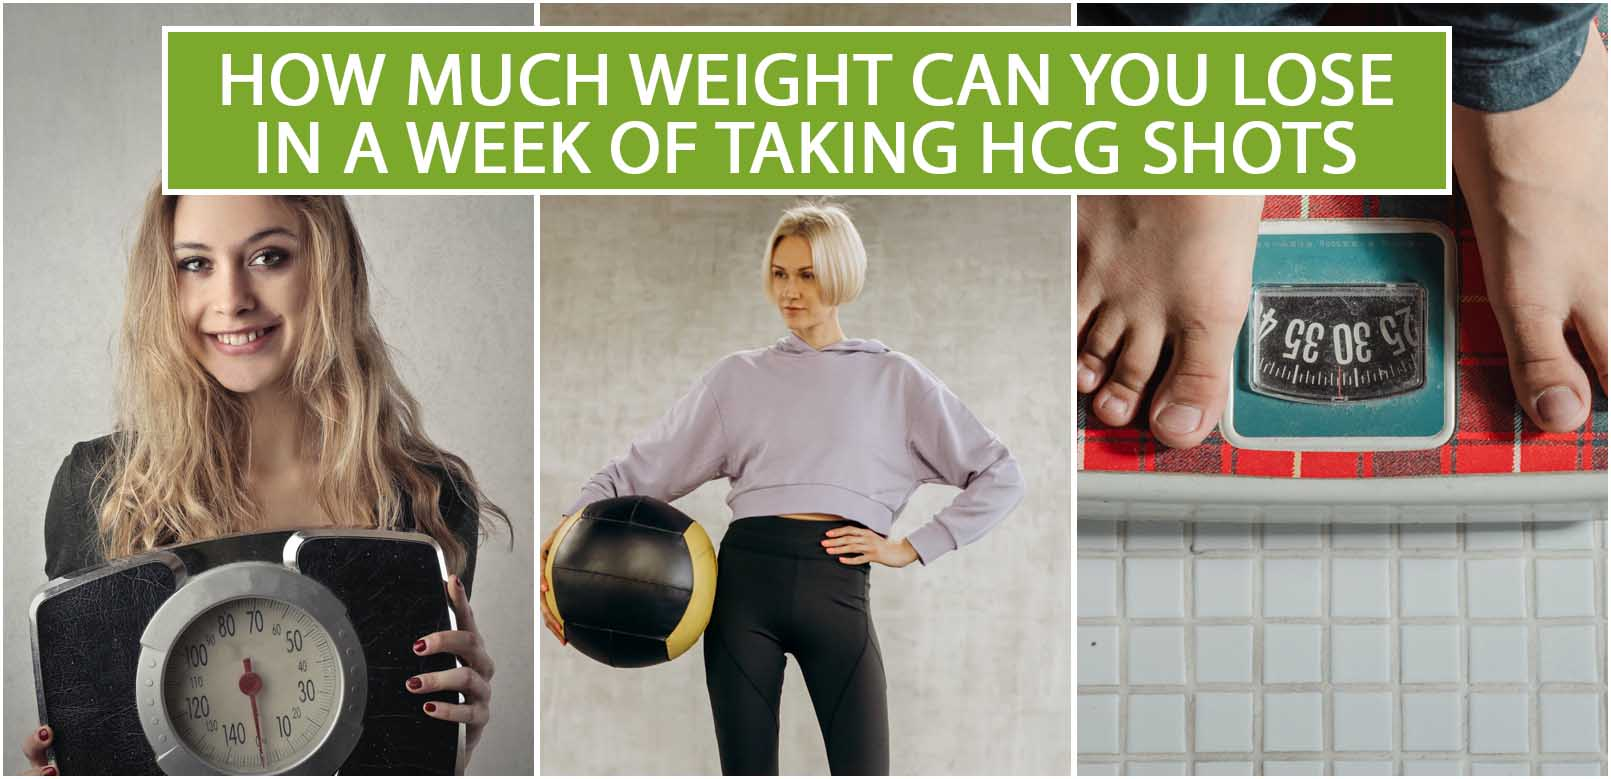 HOW MUCH WEIGHT CAN YOU LOSE IN A WEEK OF TAKING HCG SHOTS